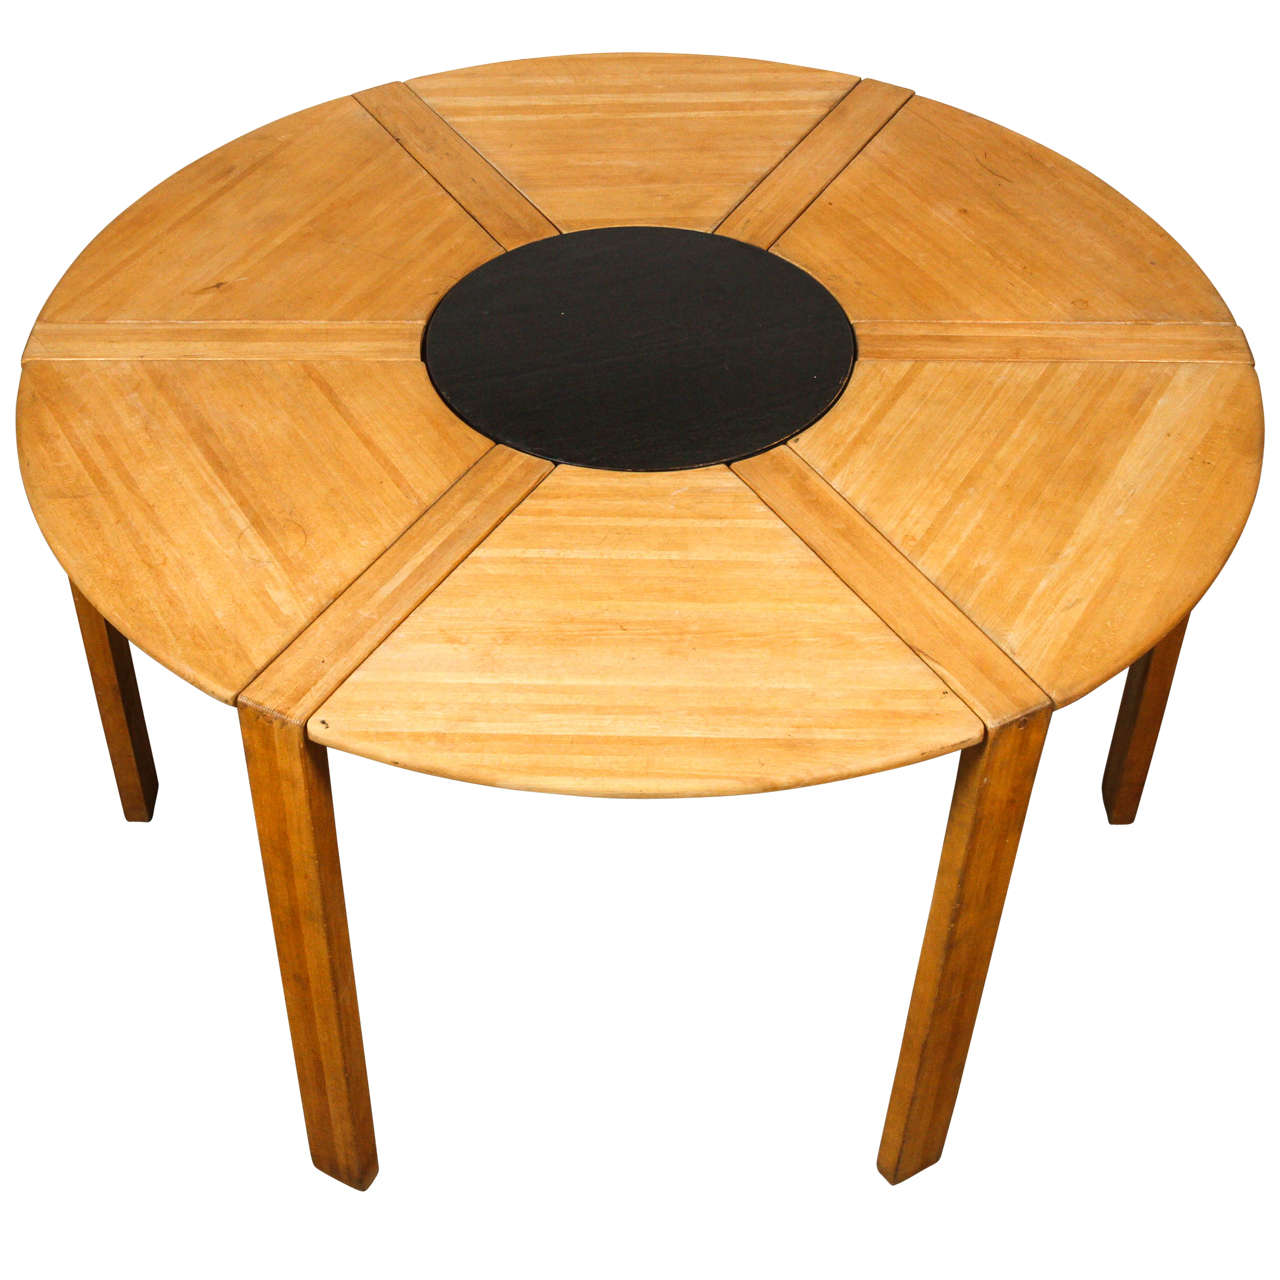 Round Table By Jens Quistgaard For Nissen At 1stdibs. Full resolution  image, nominally Width 1280 Height 1280 pixels, image with #AF5301.